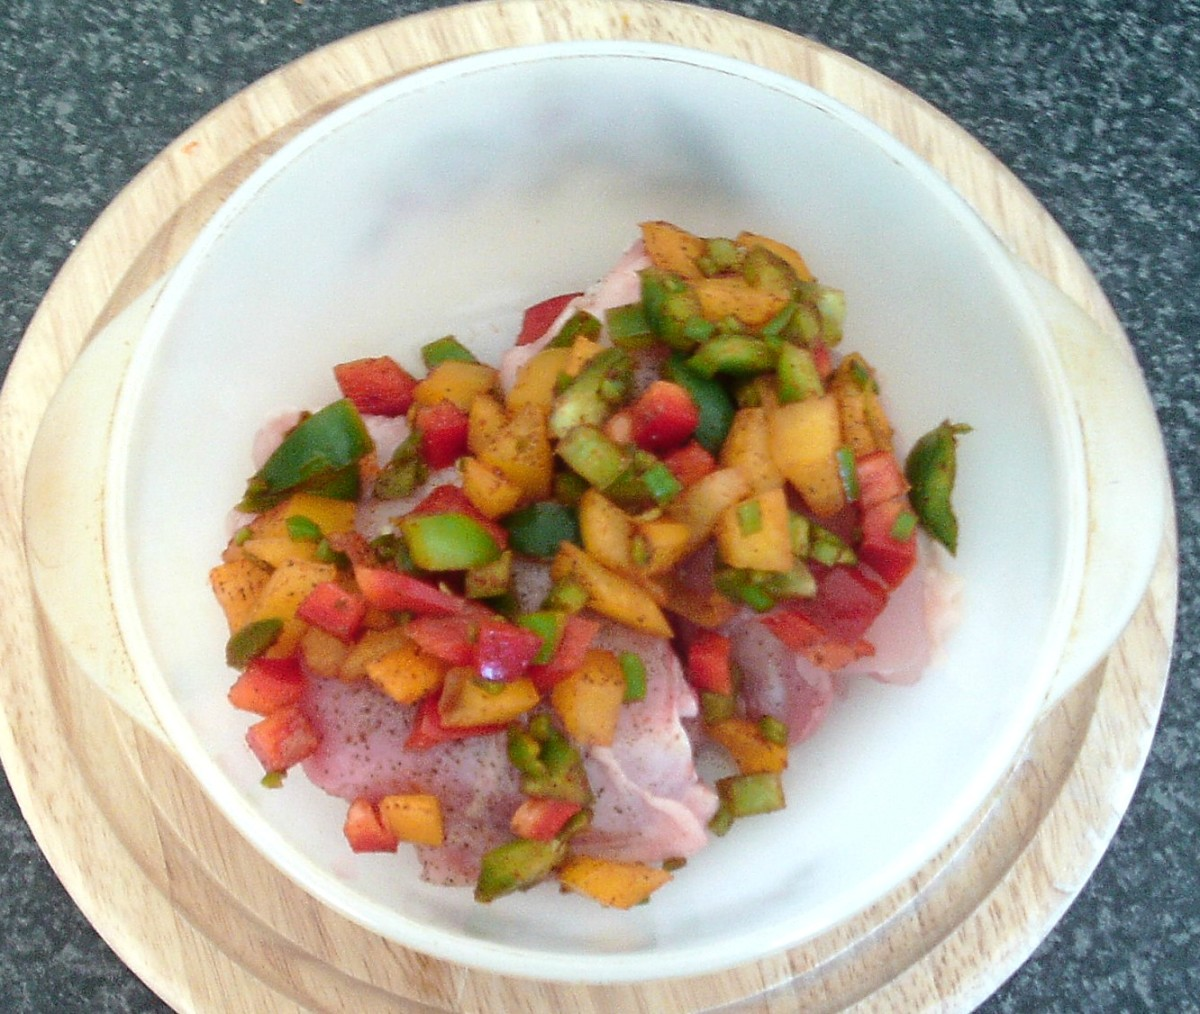 Diced bell peppers are arranged on skinned chicken thighs